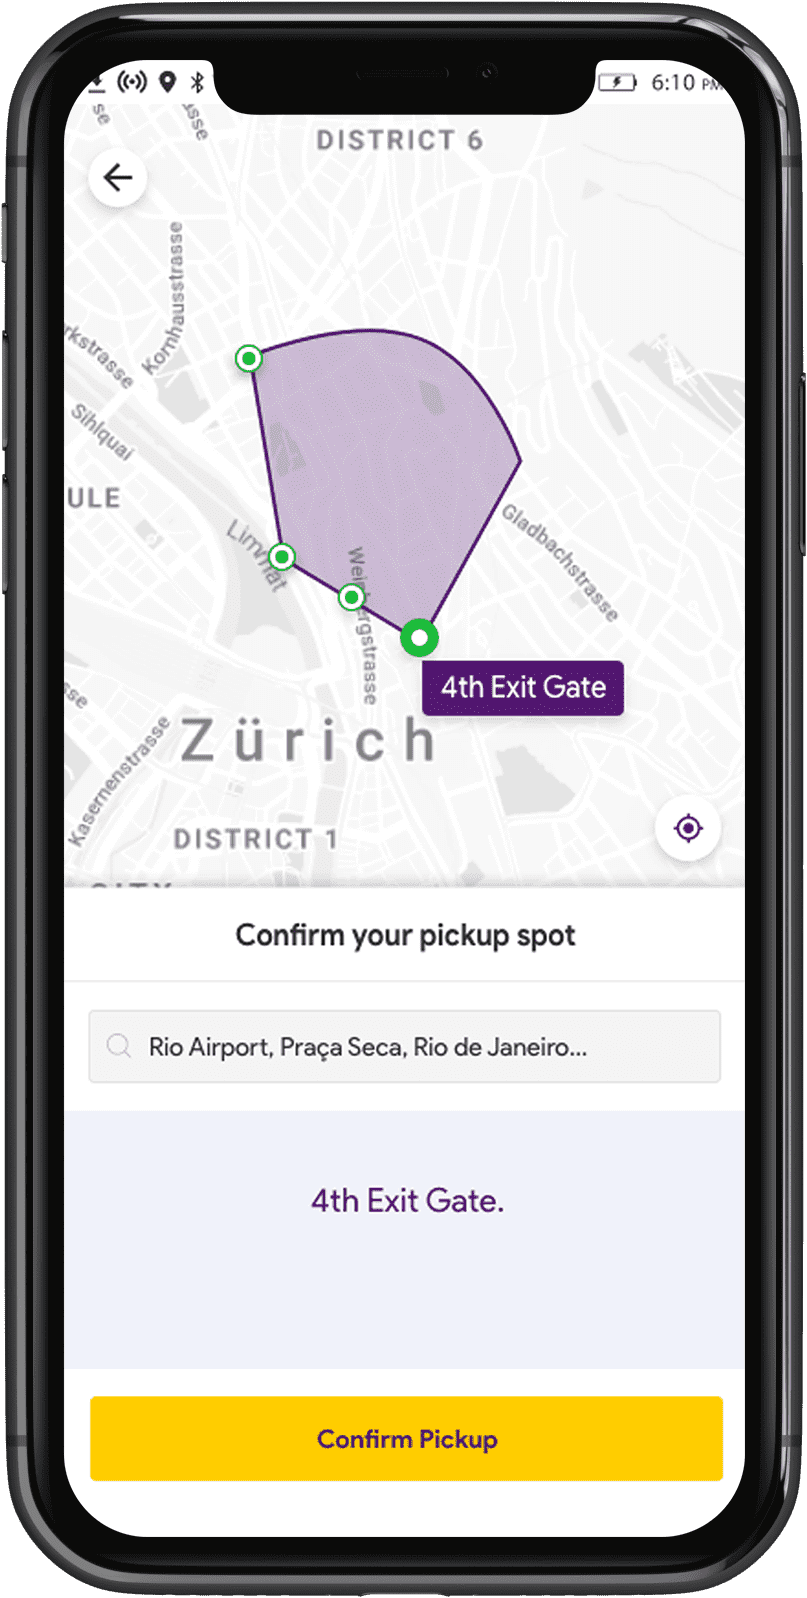 confirm-pickup-zone-in-ride-sharing-customer-app.png